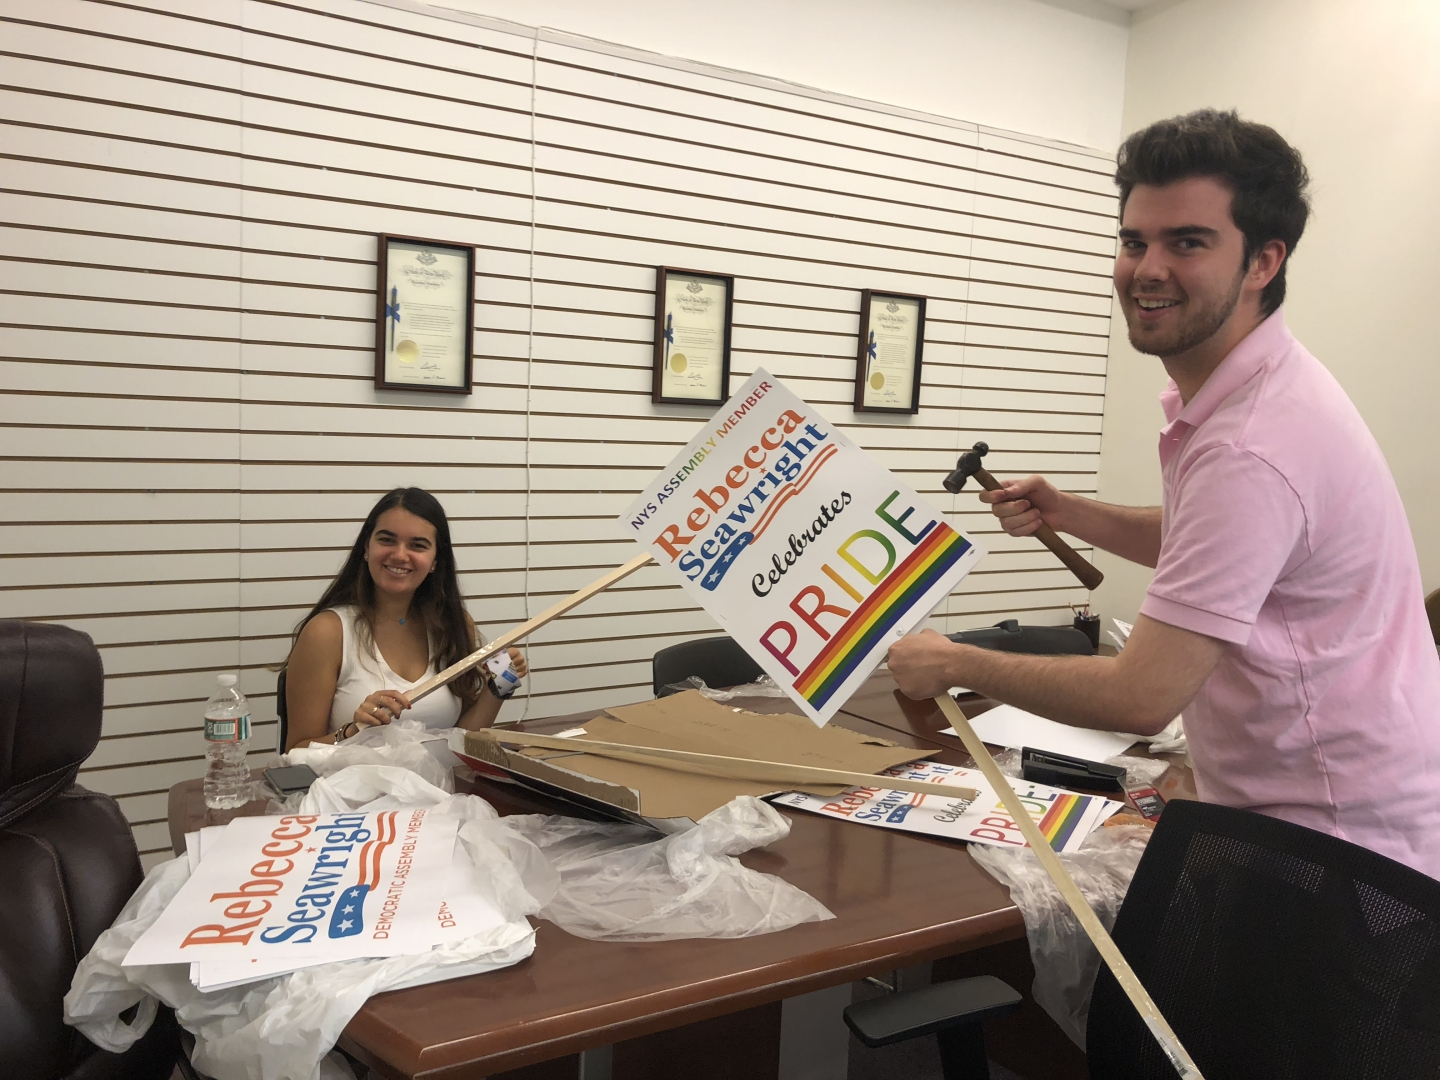 Carly Deitelzweig and Luke Spellman prepare signs for the Pride March on Sunday!<br />&nbsp;